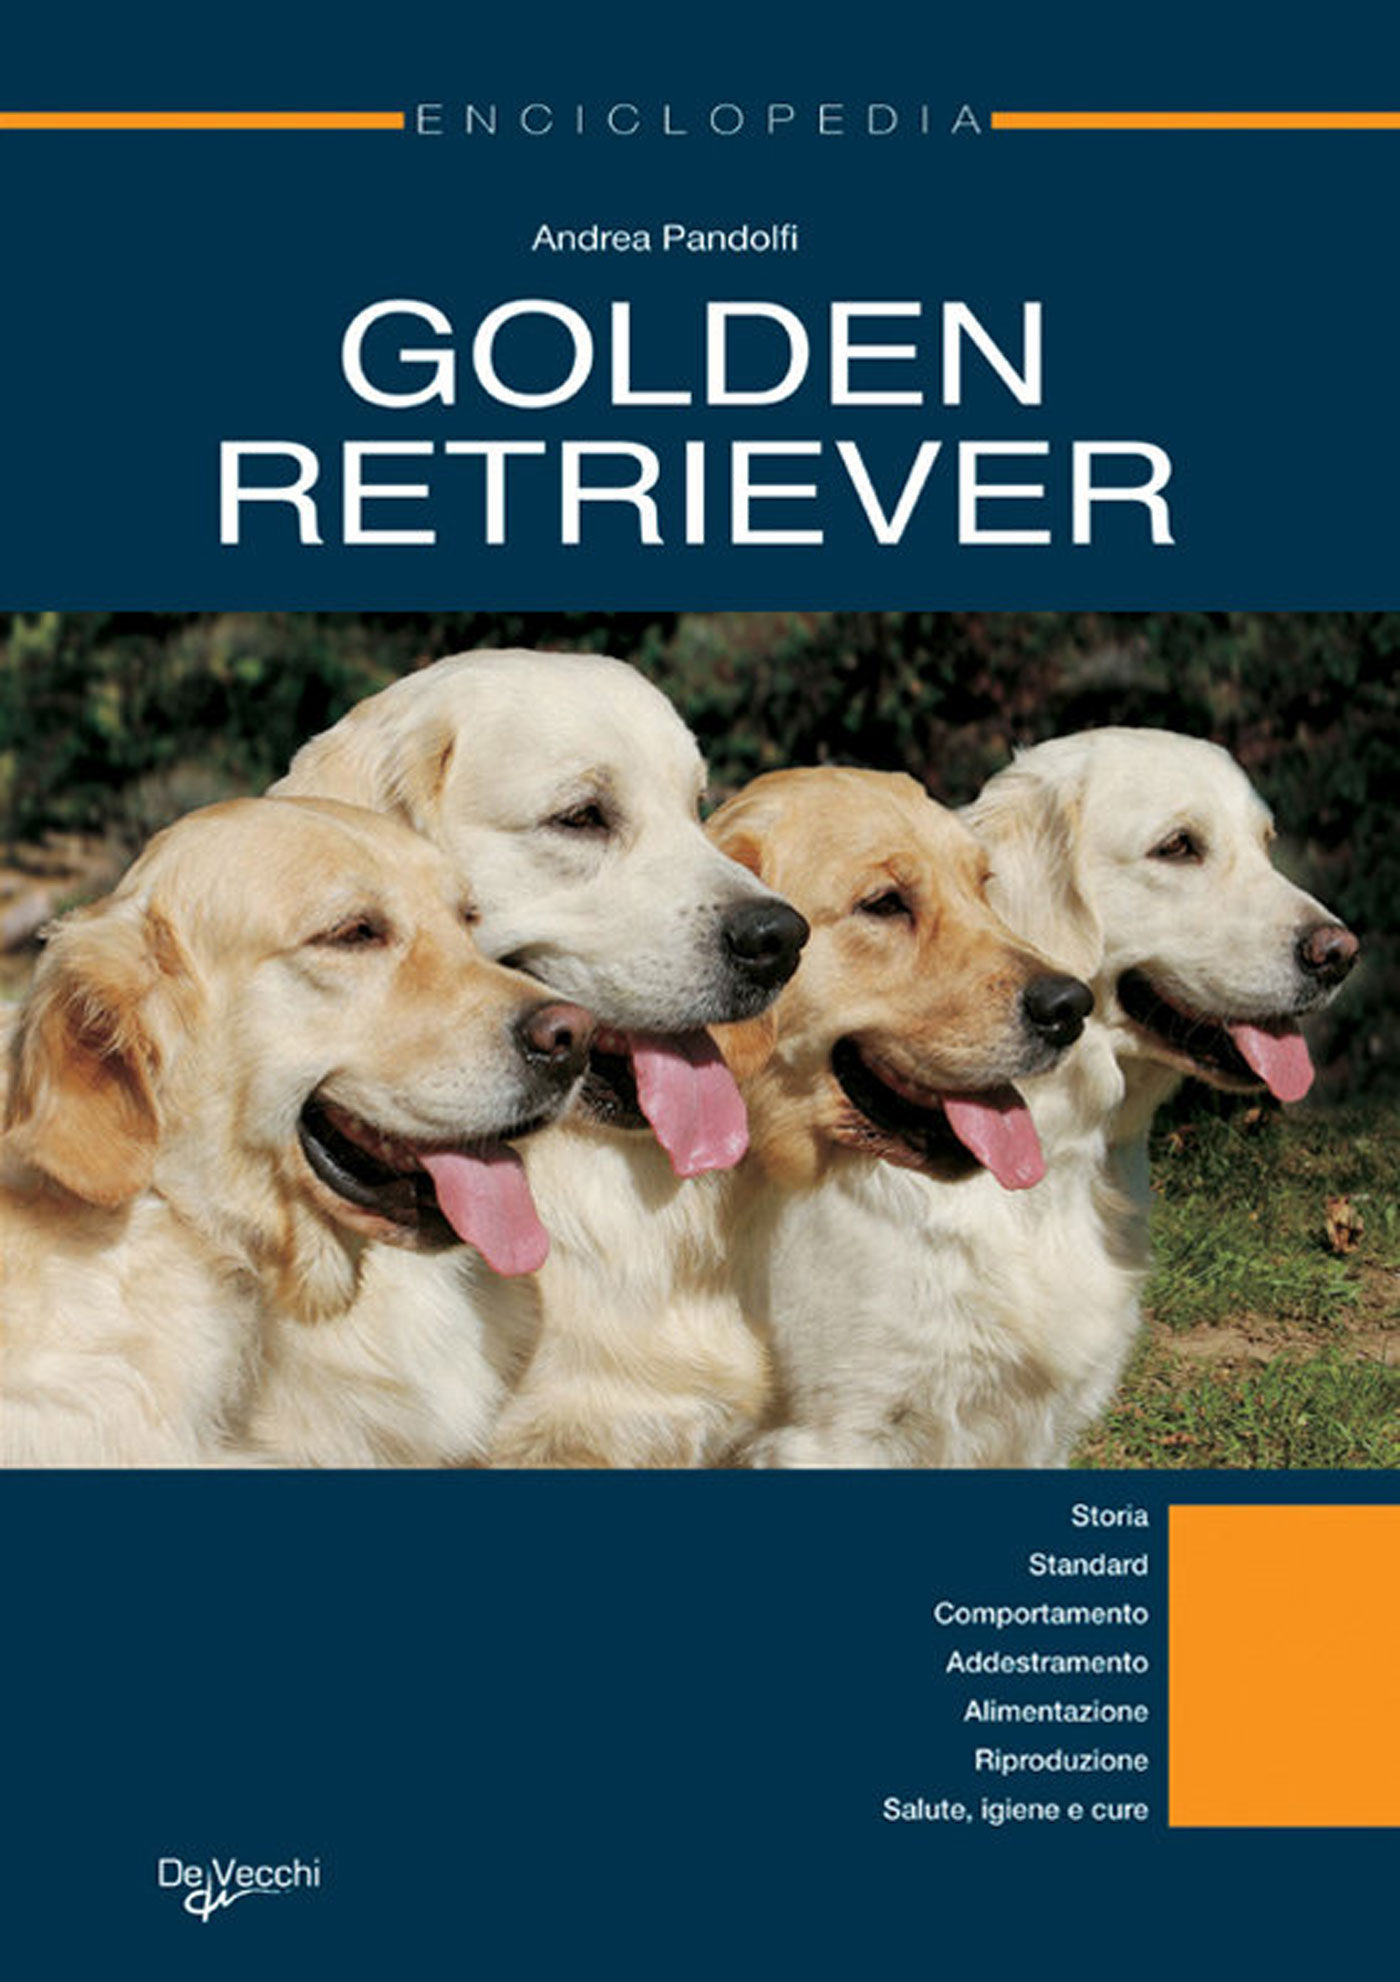 Libro Golden Retriever Golden Retriever Enciclopedia Ebook Andrea Pandolfi